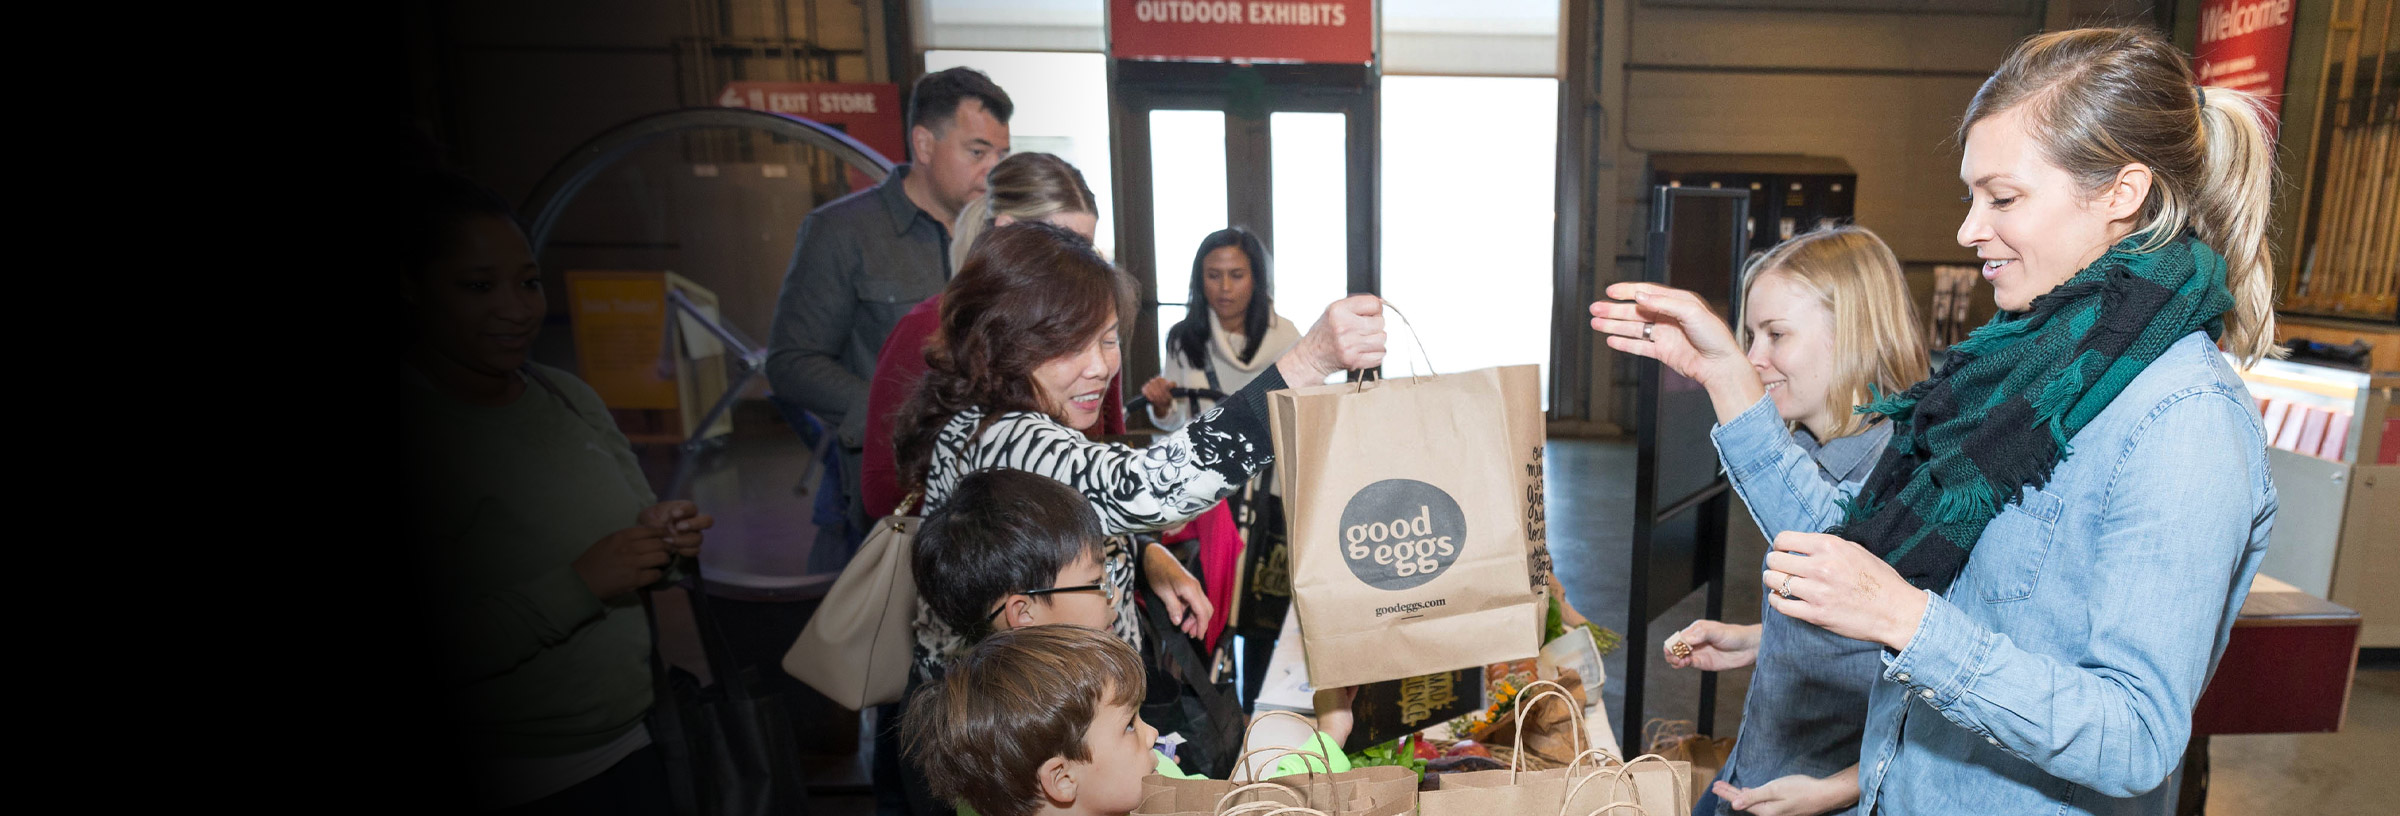 Visitors collecting thier good eggs gift bags at Wonder Funday